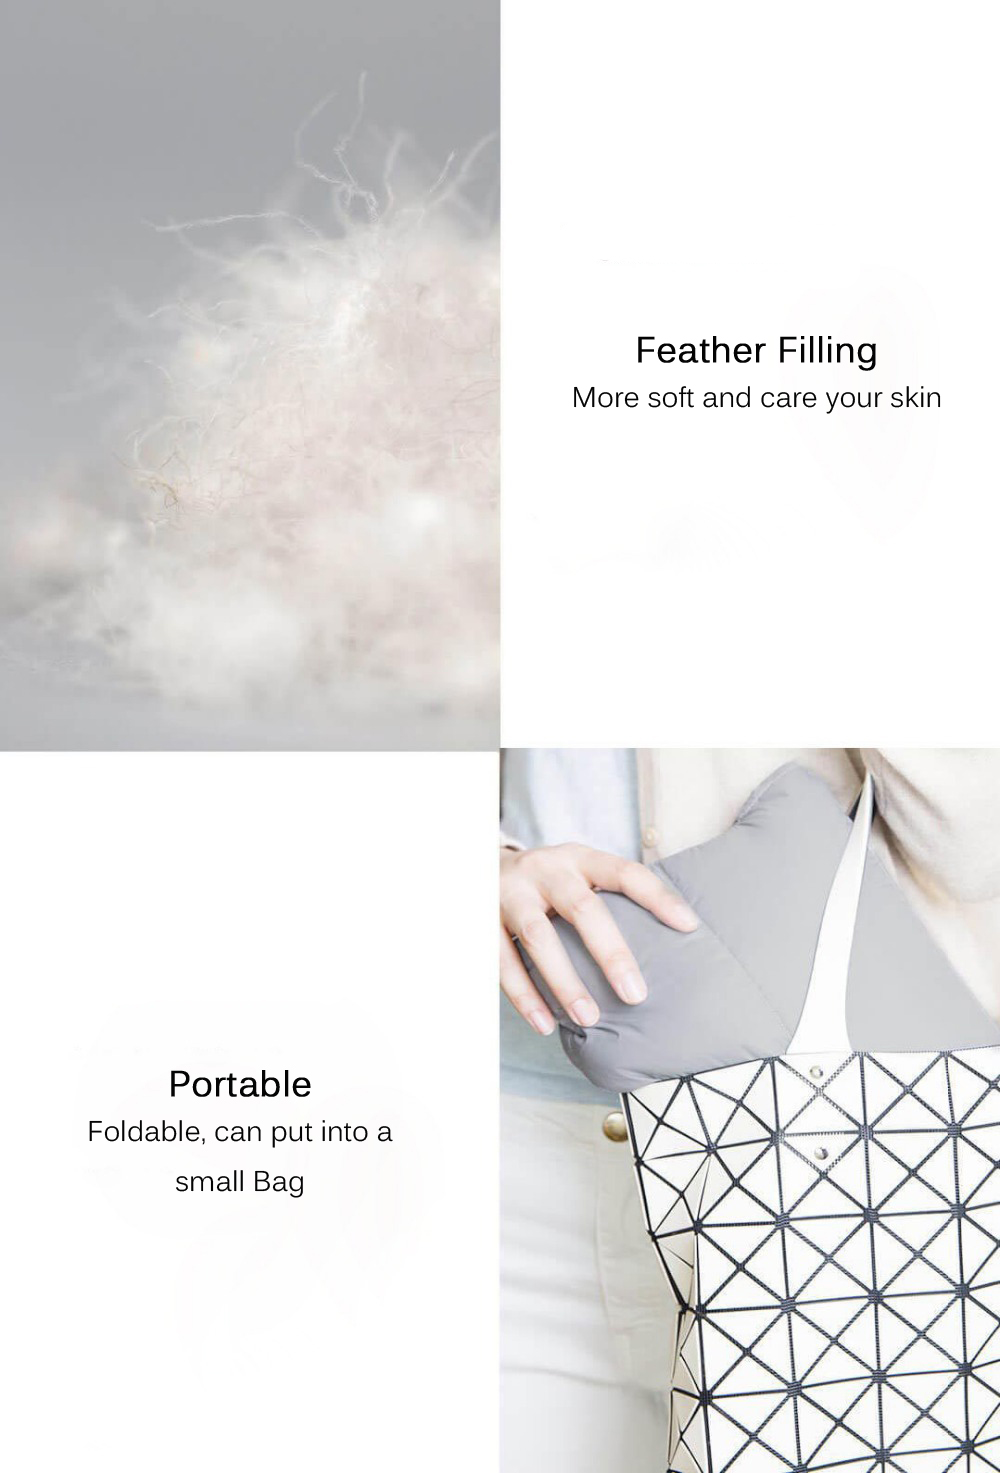 Xiaomi Feather Filling Nap Blankets Portable Super Light Soft Multifunctional Blanket Wearing Covering for Travel Home Office